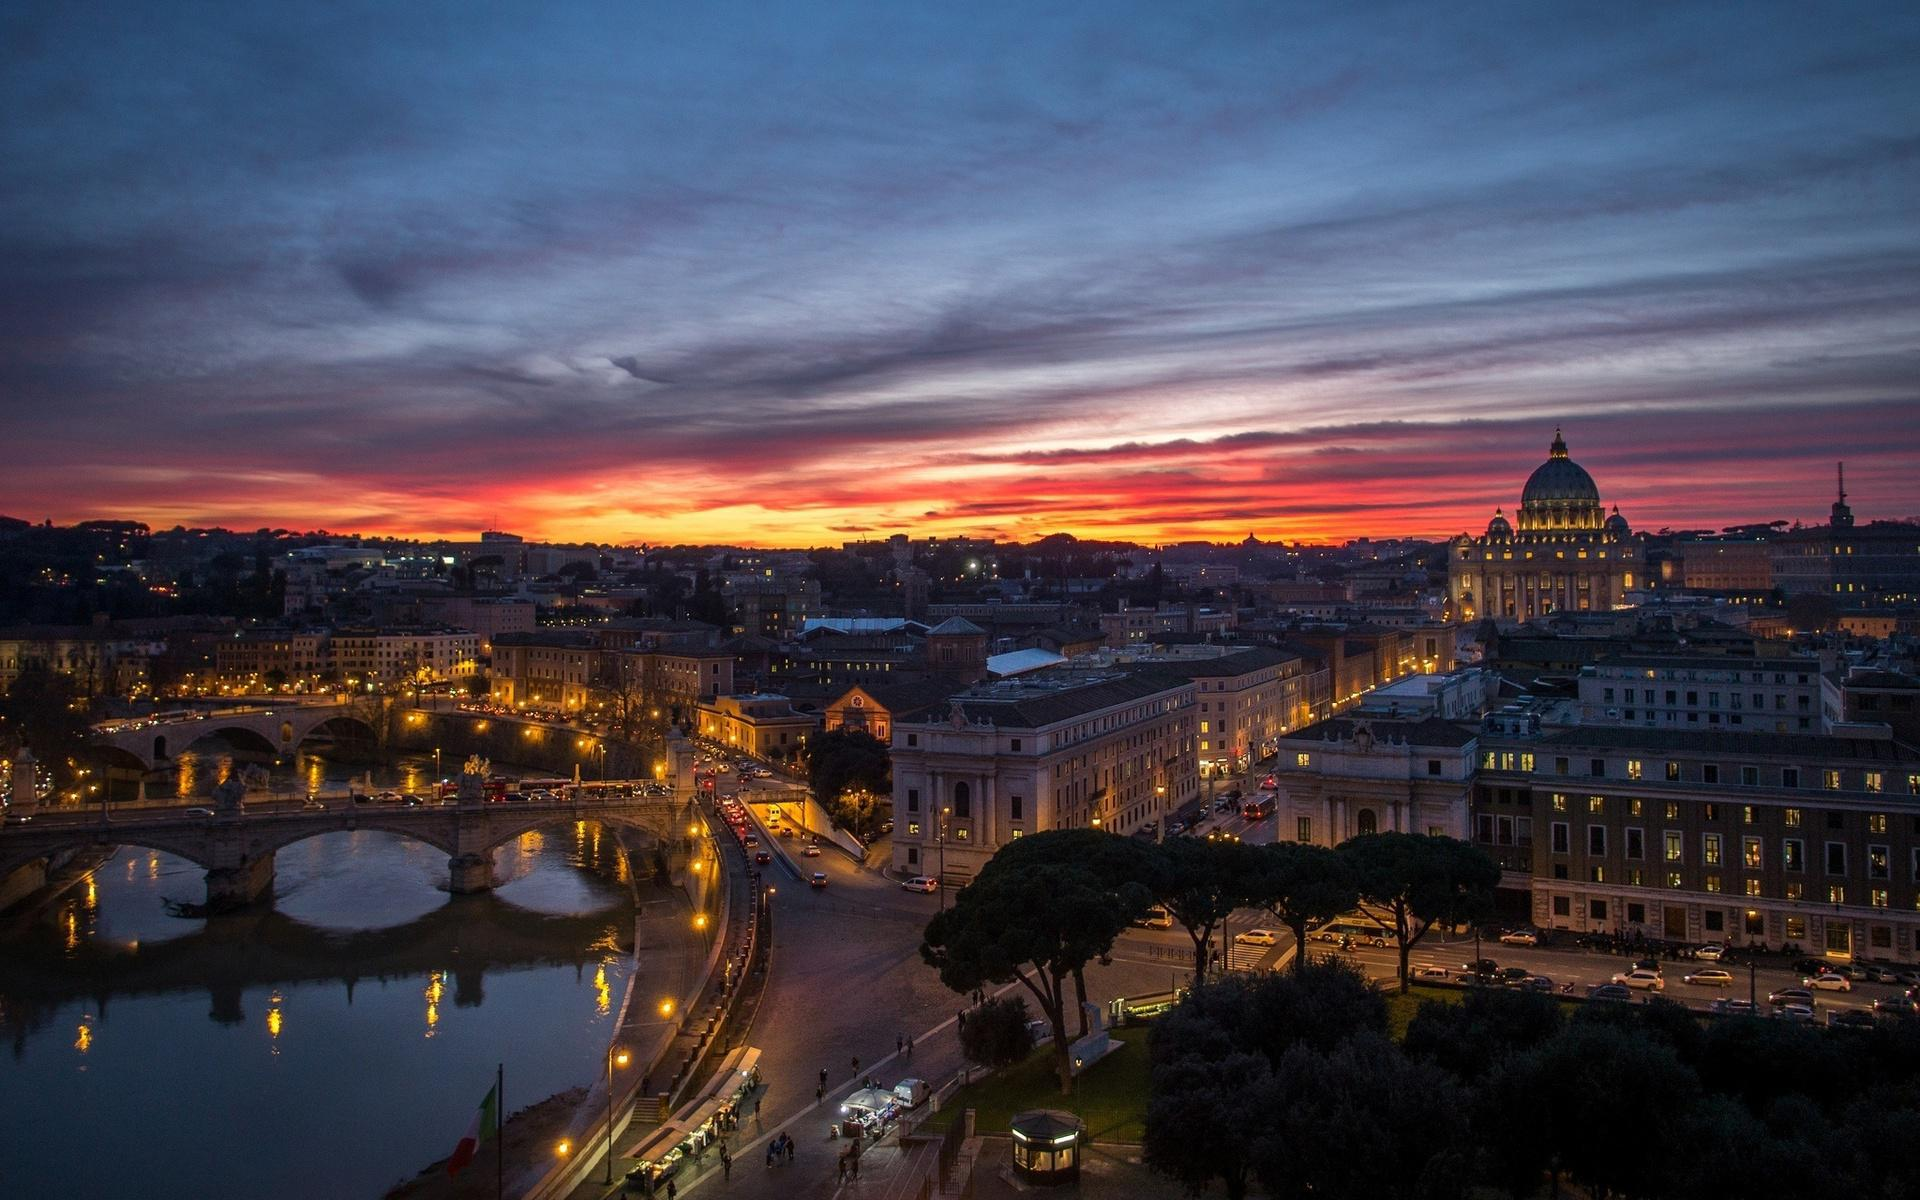 rome-vatican-city-night-sunset-panorama-houses-buildings-reflection-background